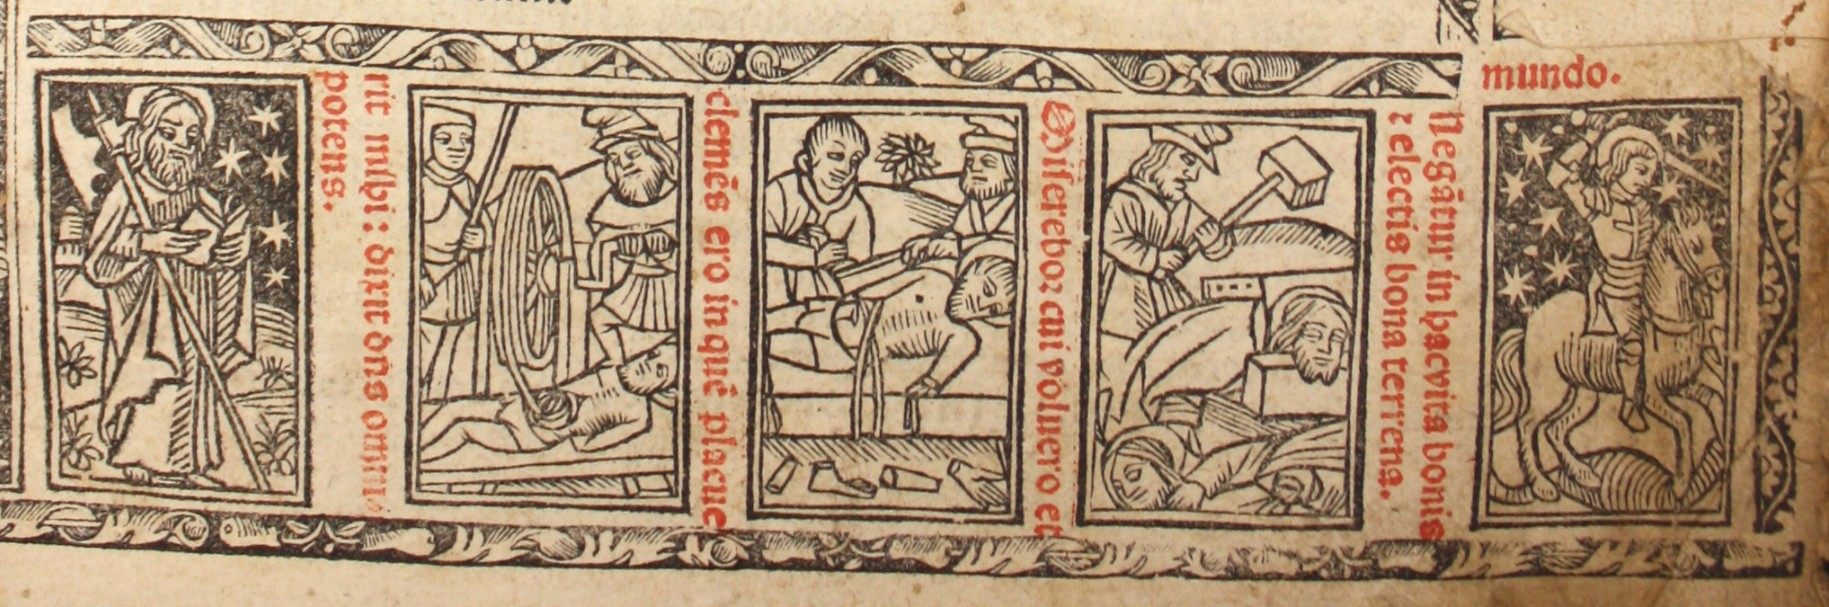 Detail from title page of Arch b 7 4 showing woodcut images of saints